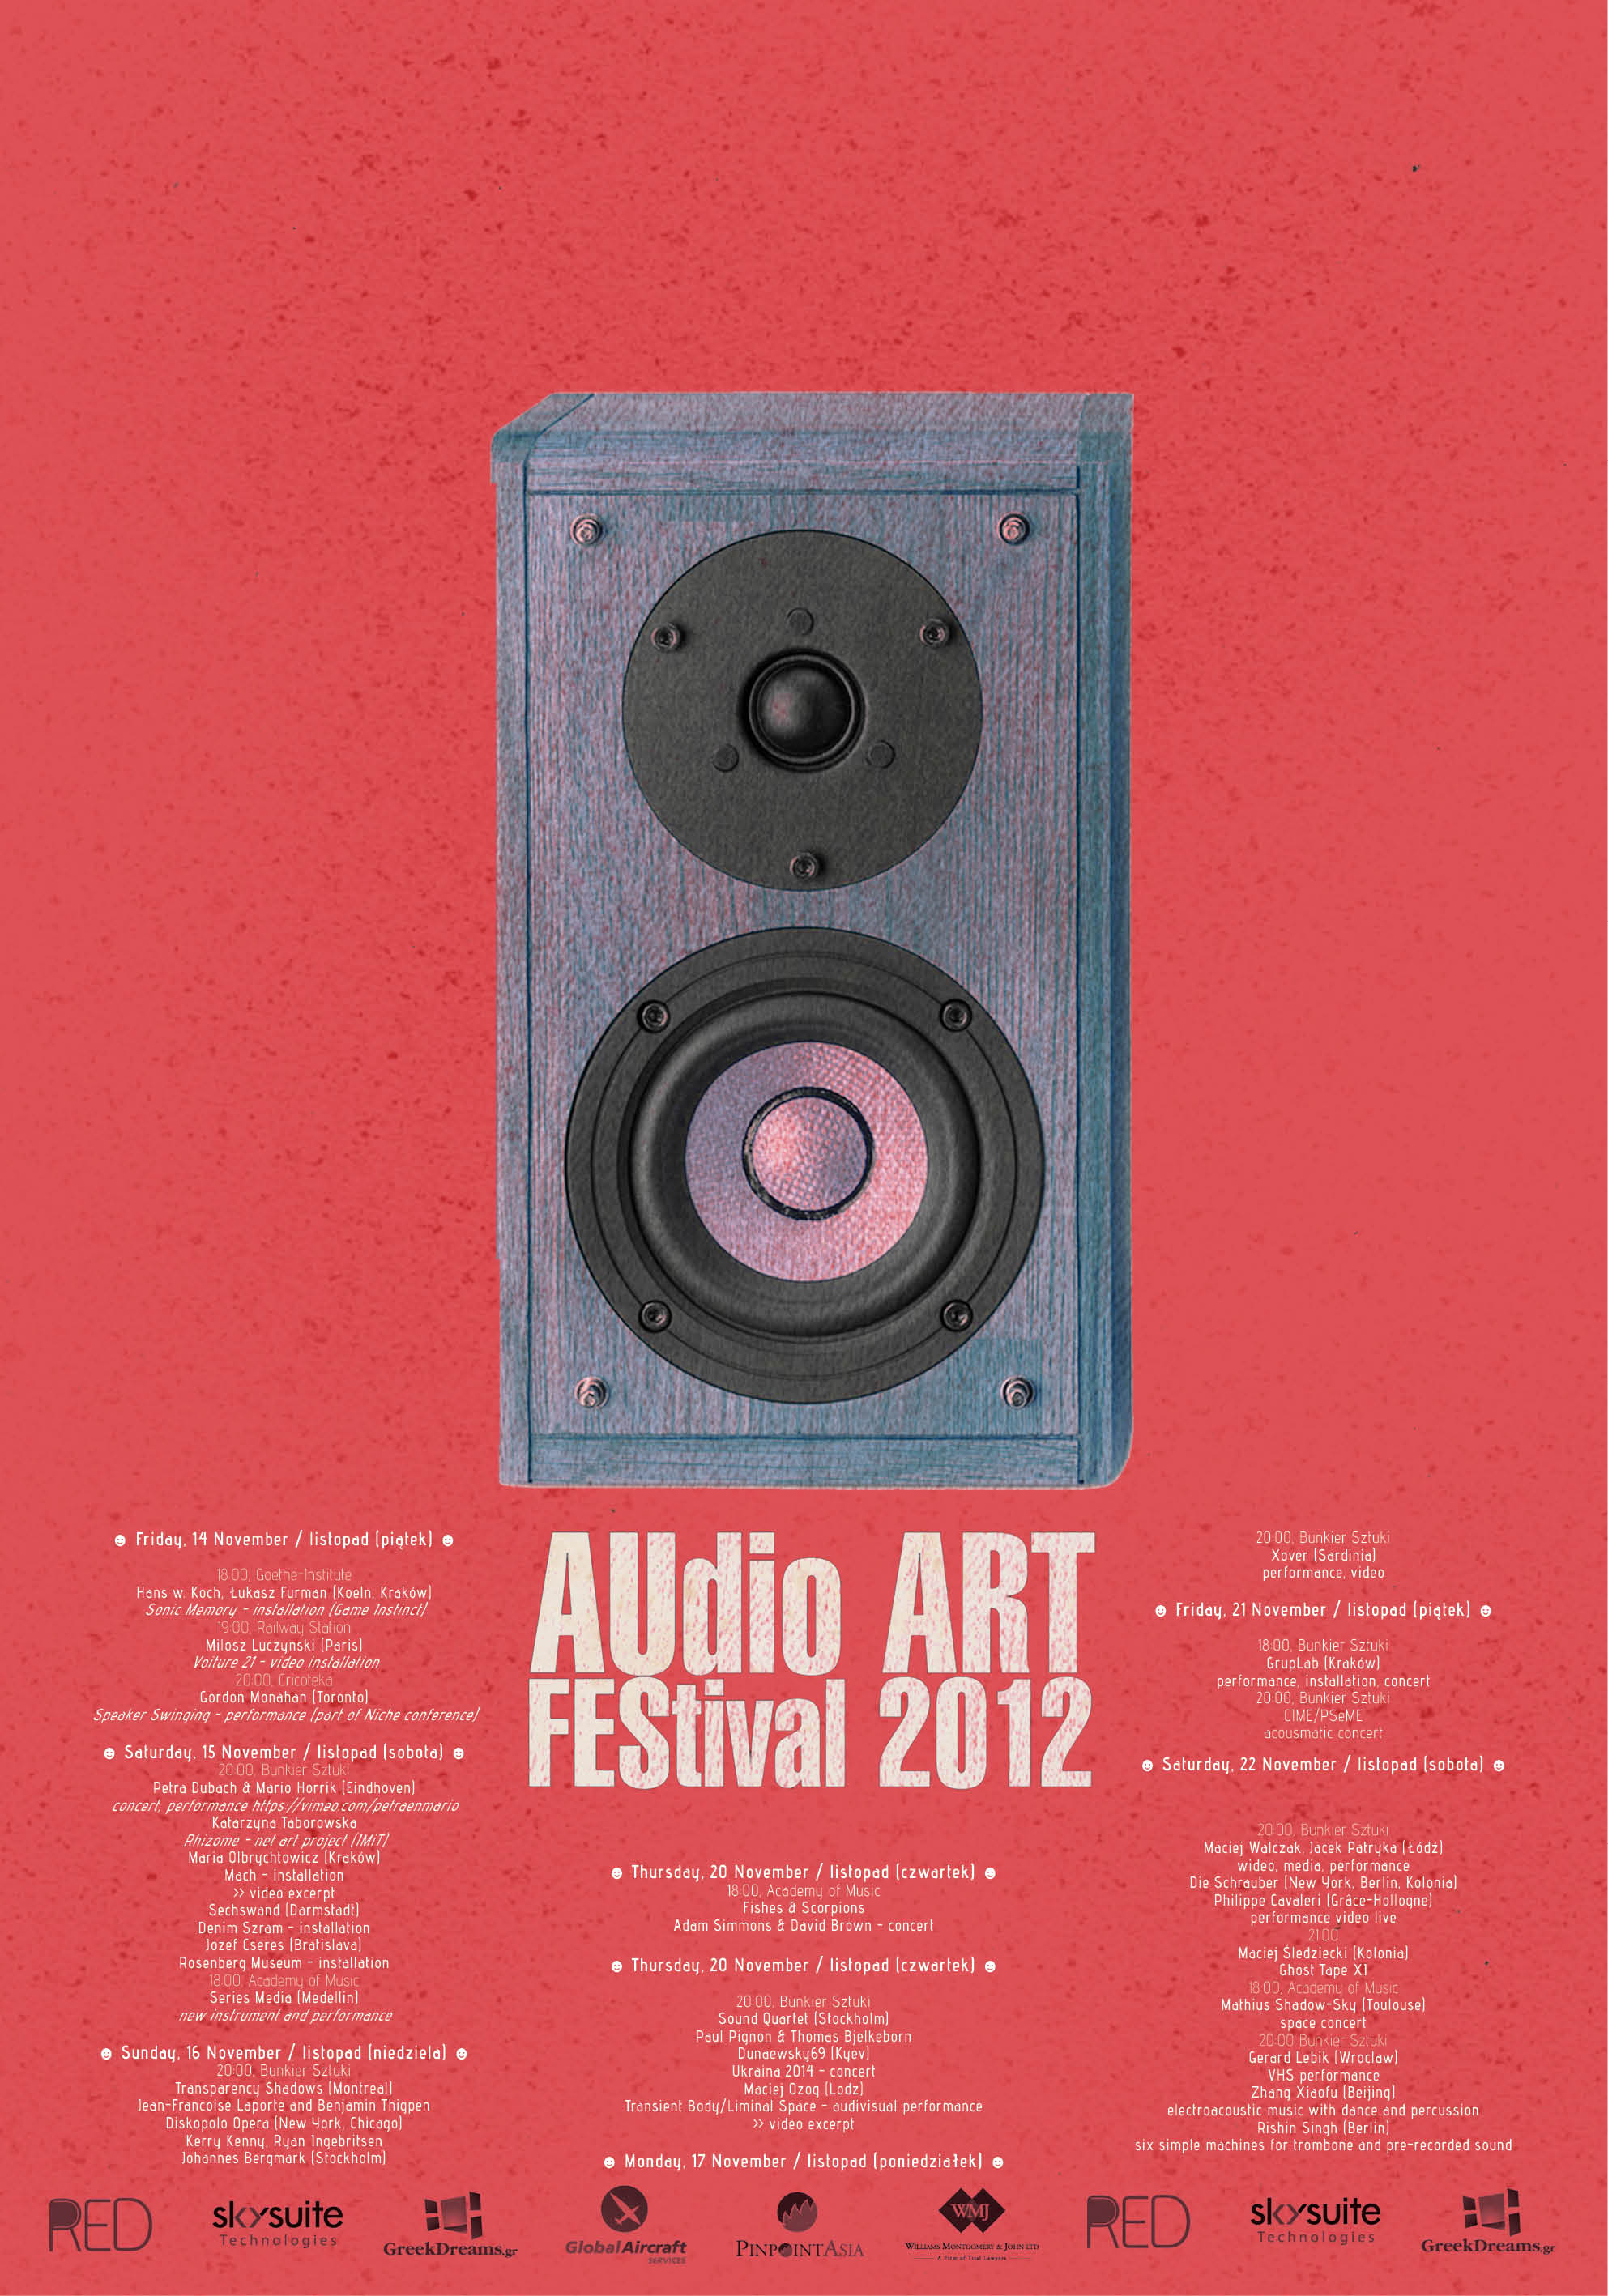 Audio Art Festival 2012 Poster